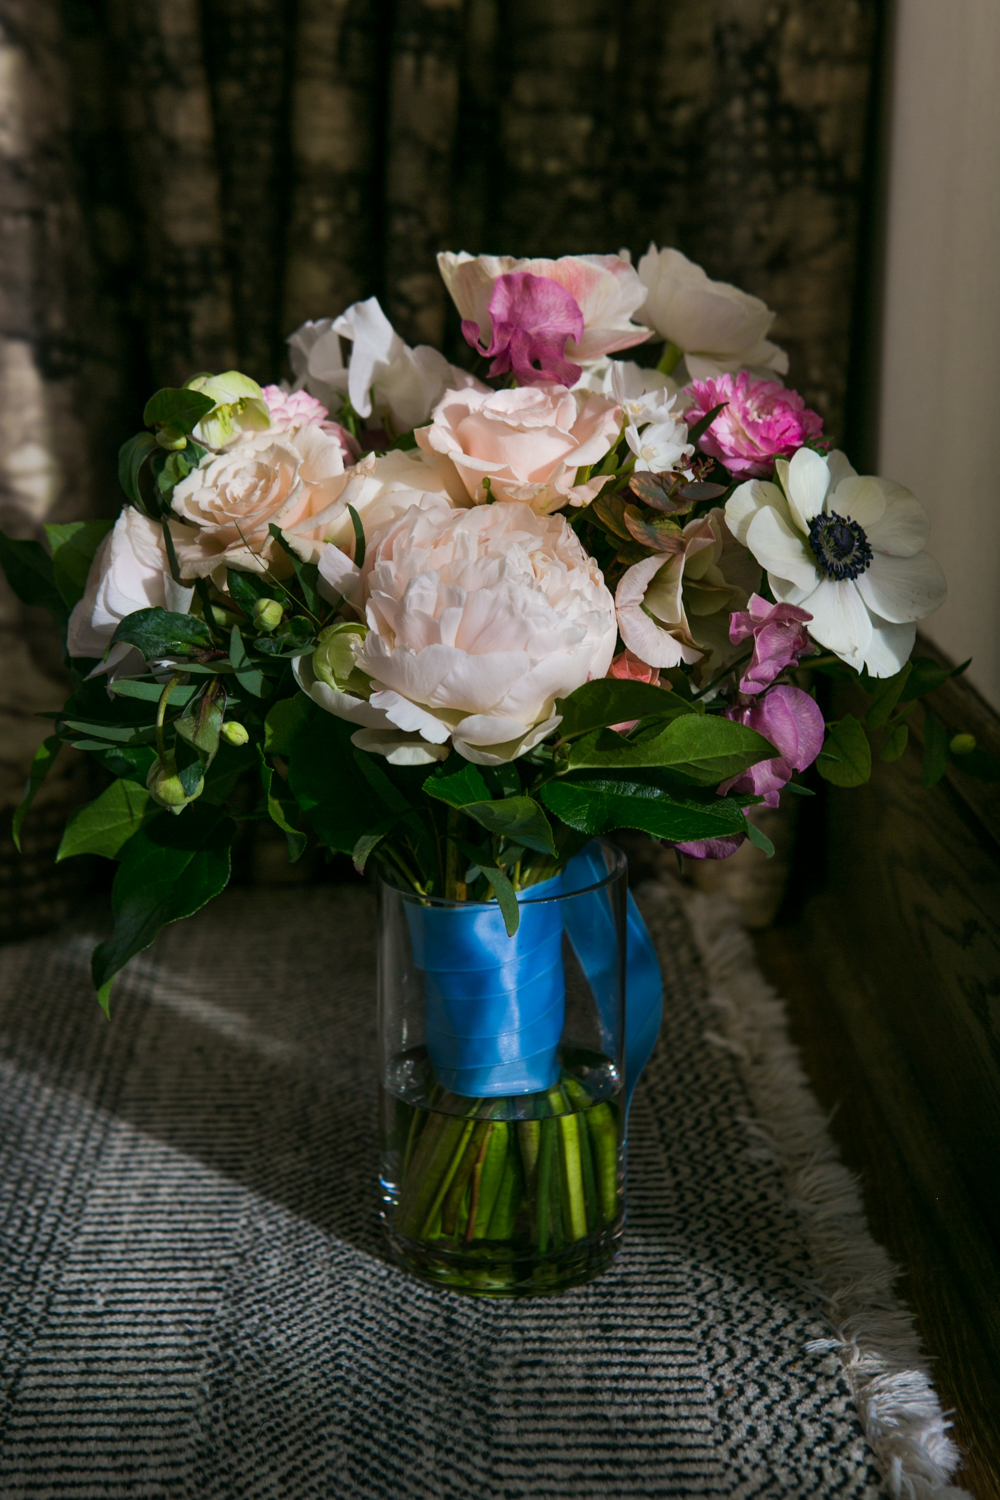 Bride's bouquet by Sprout Home Floral Design